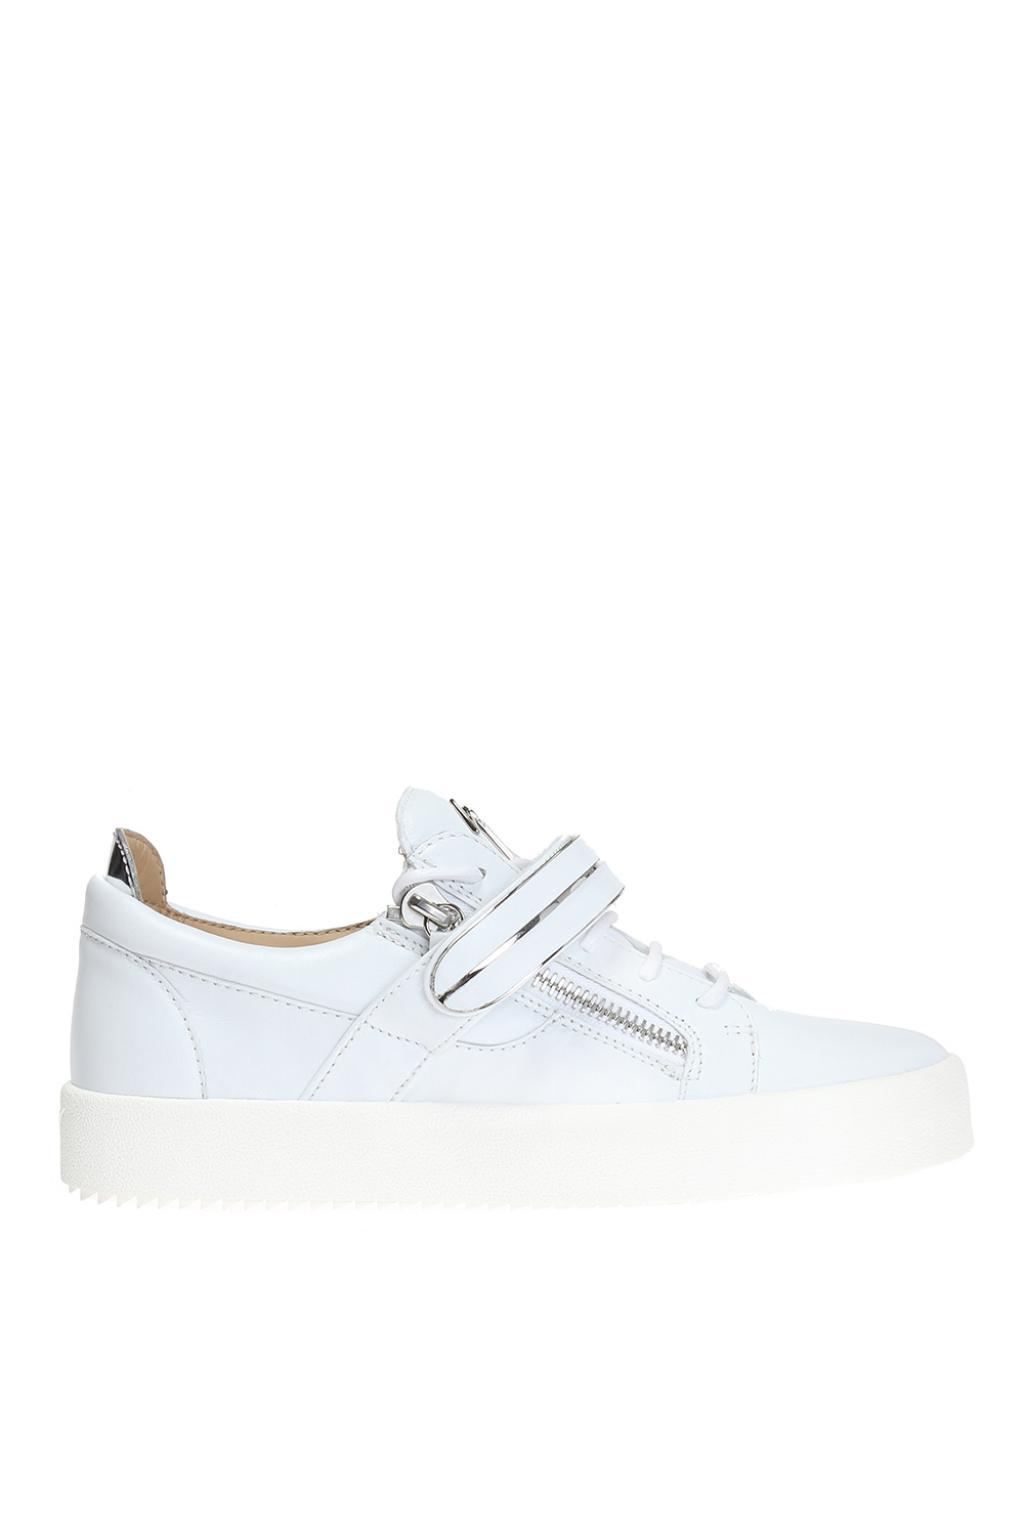 Mick low top sneakers - White Giuseppe Zanotti V6hSEZ8Nq